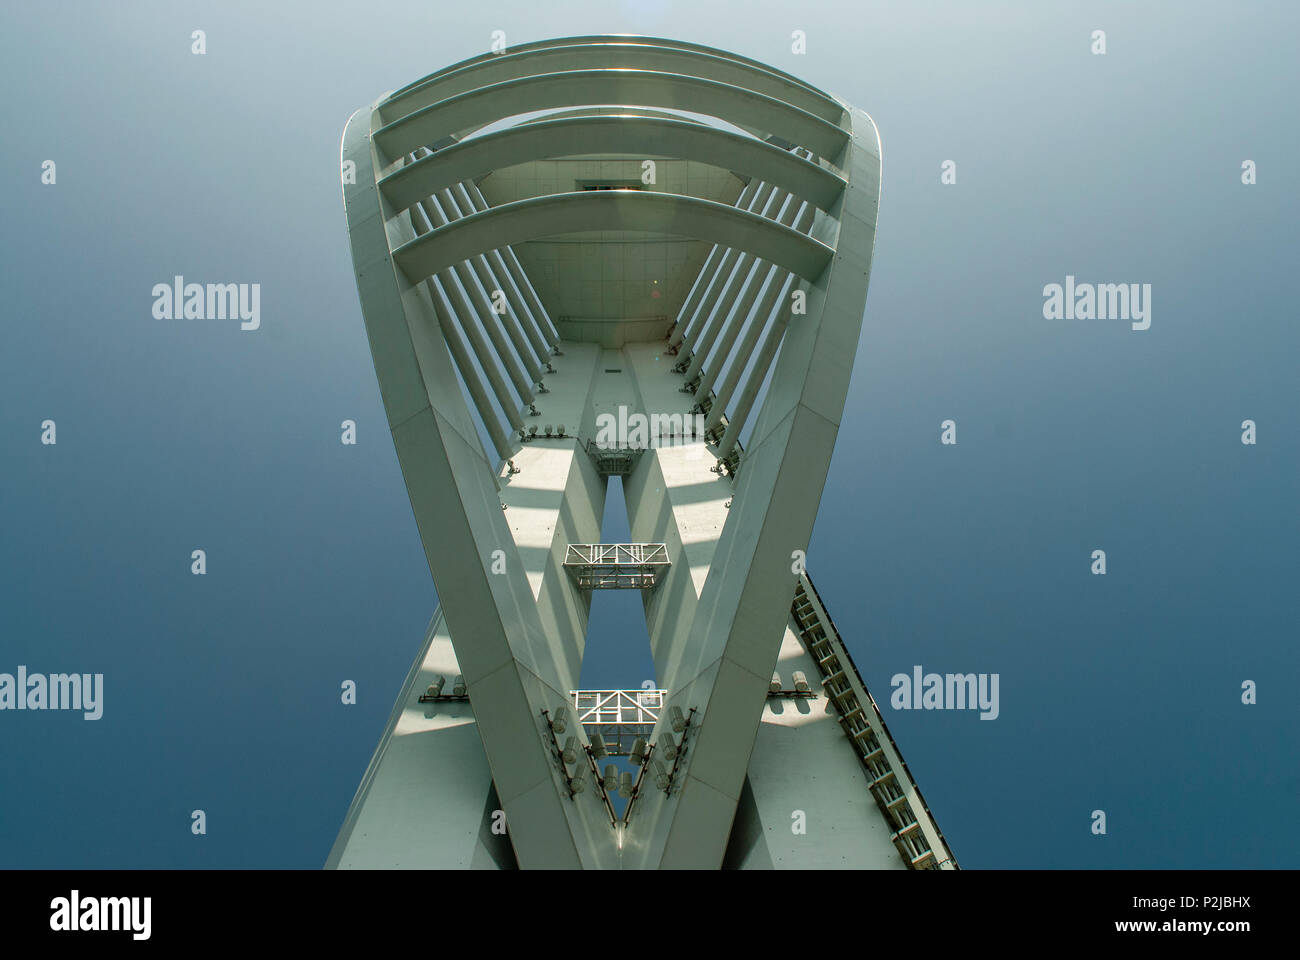 View of Spinnaker Tower, Gunwharf Quays, Portsmouth, UK Stock Photo